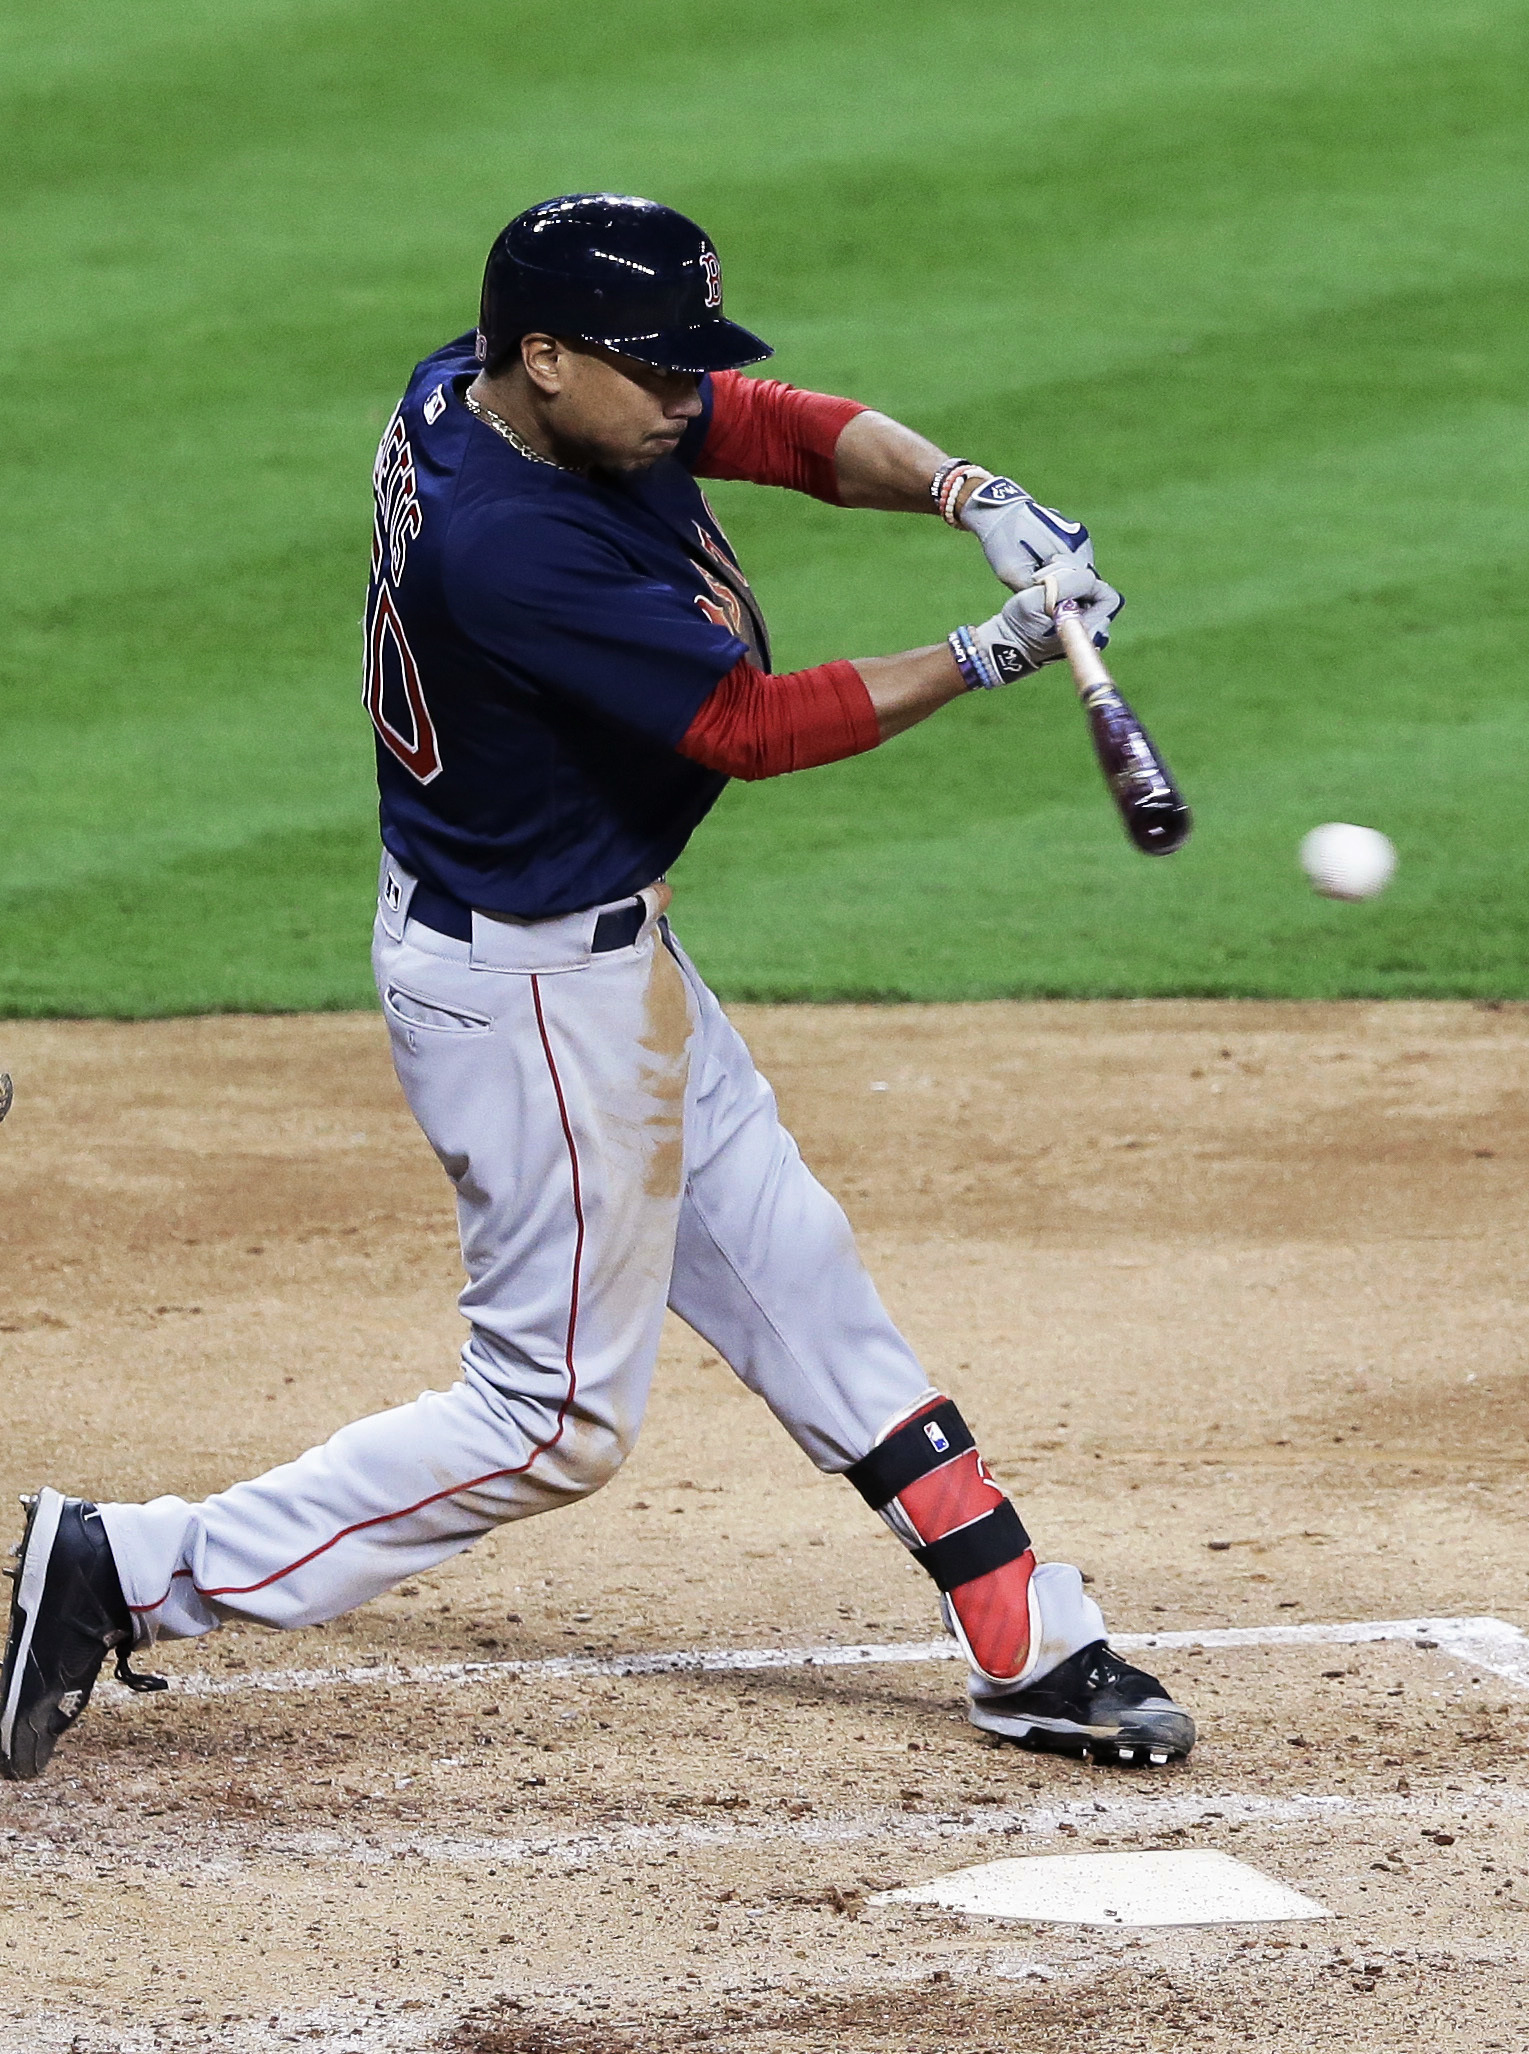 Boston Red Sox's Mookie Betts hits a single against the Houston Astros during the fourth inning of a baseball game Friday, April 22, 2016, in Houston. (AP Photo/Pat Sullivan)